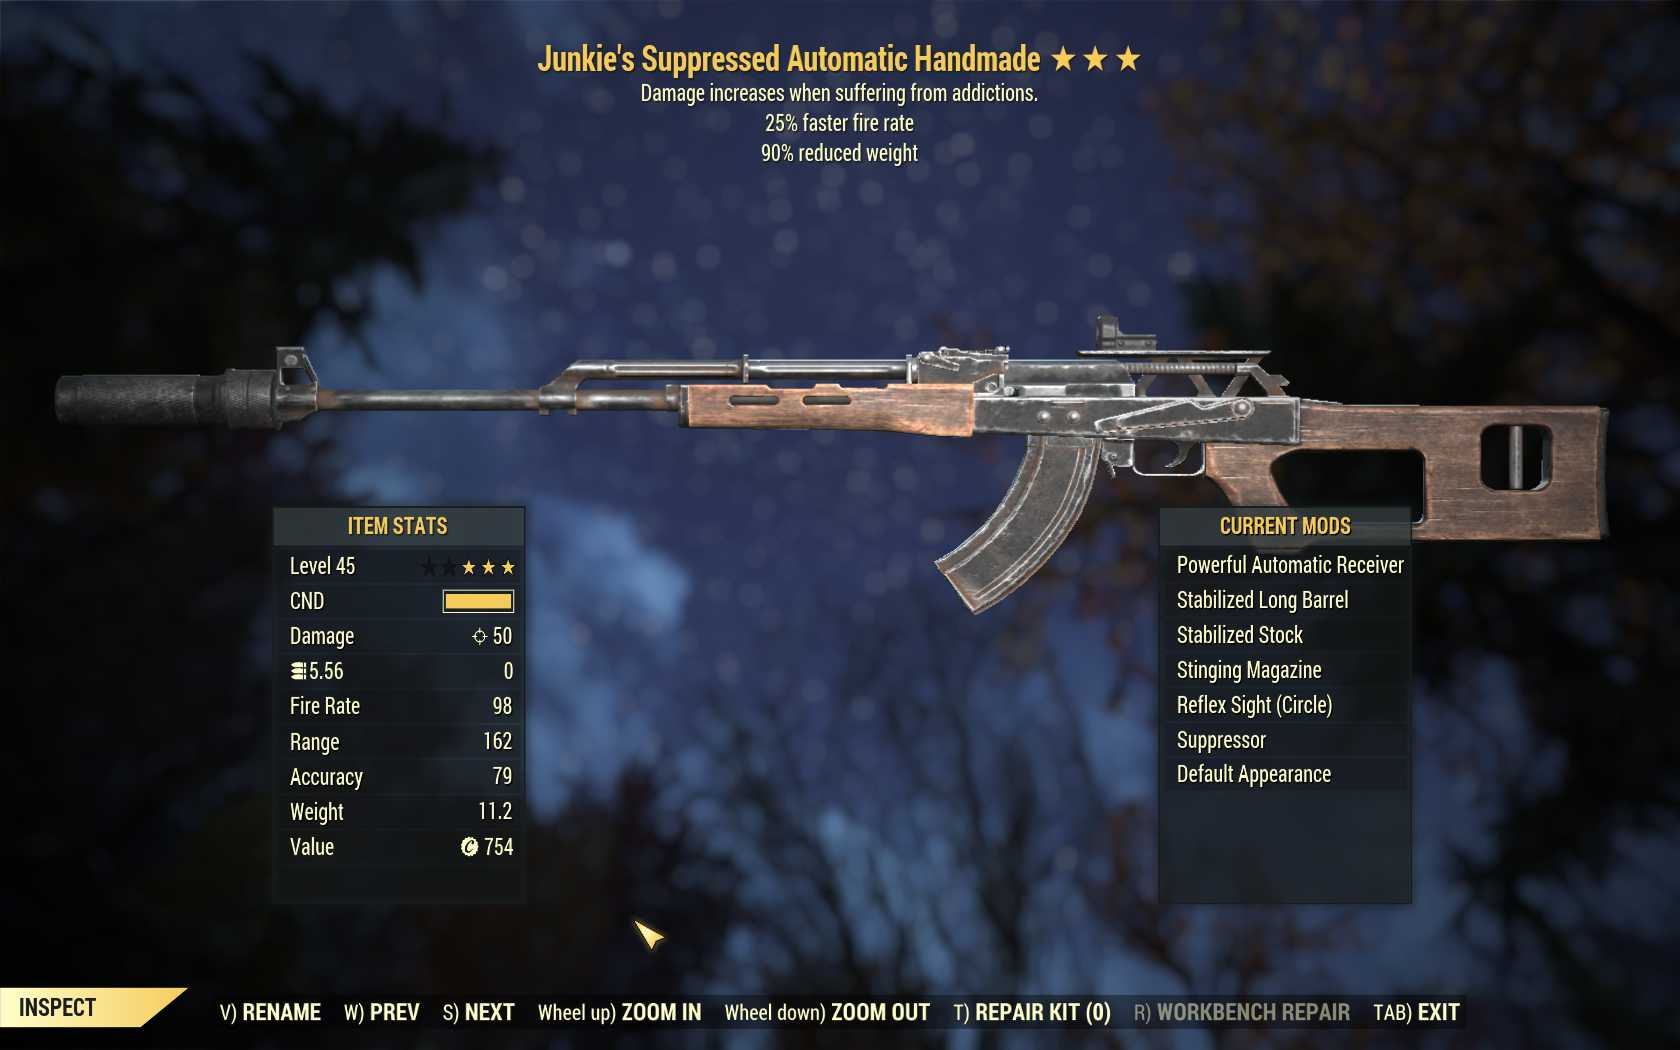 Junkie's Handmade (25% faster fire rate, 90% reduced weight)